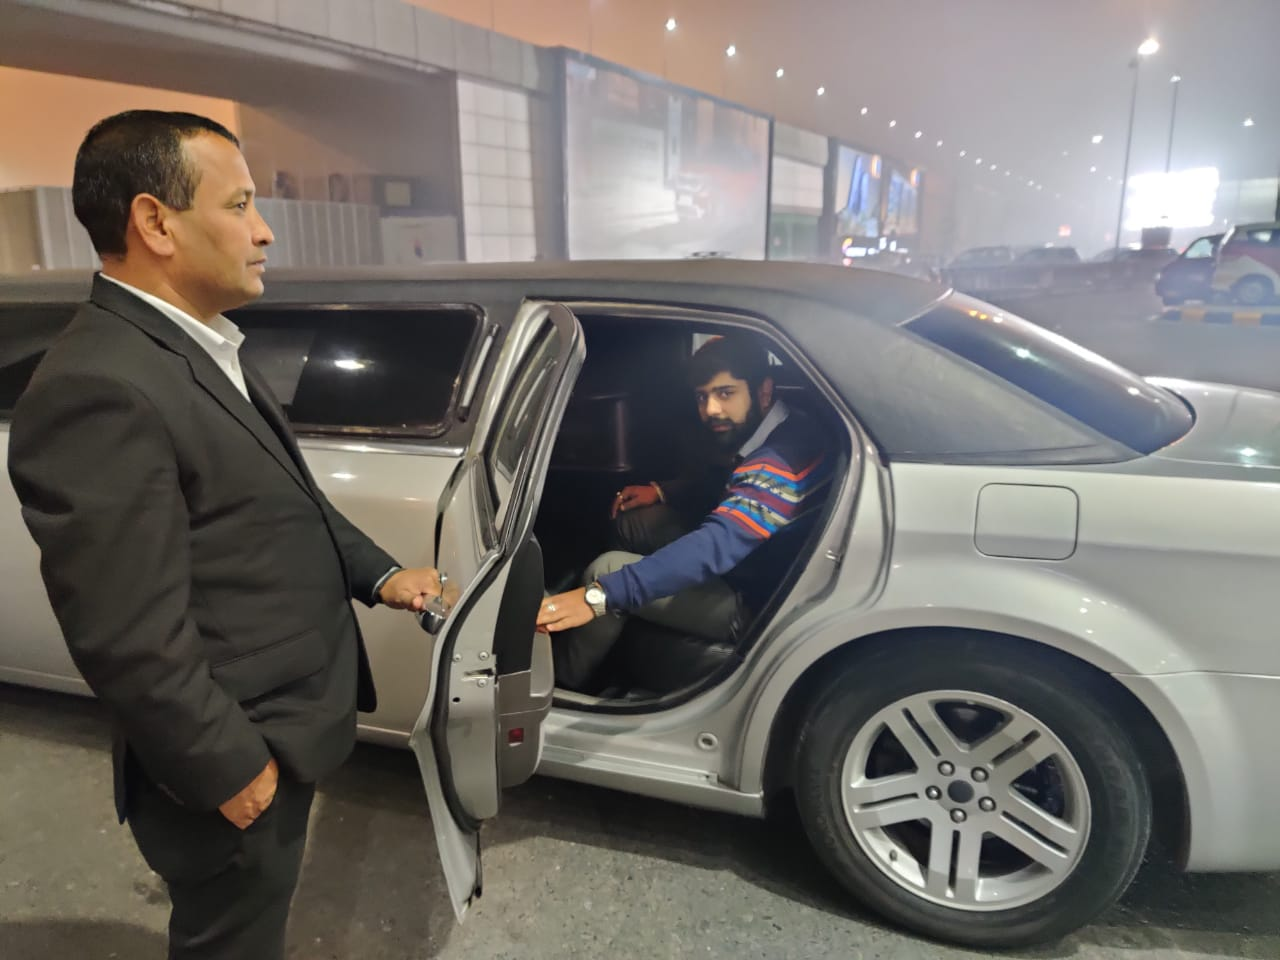 Limo cab service Airport Pickup with Luxury Car limousine with driver